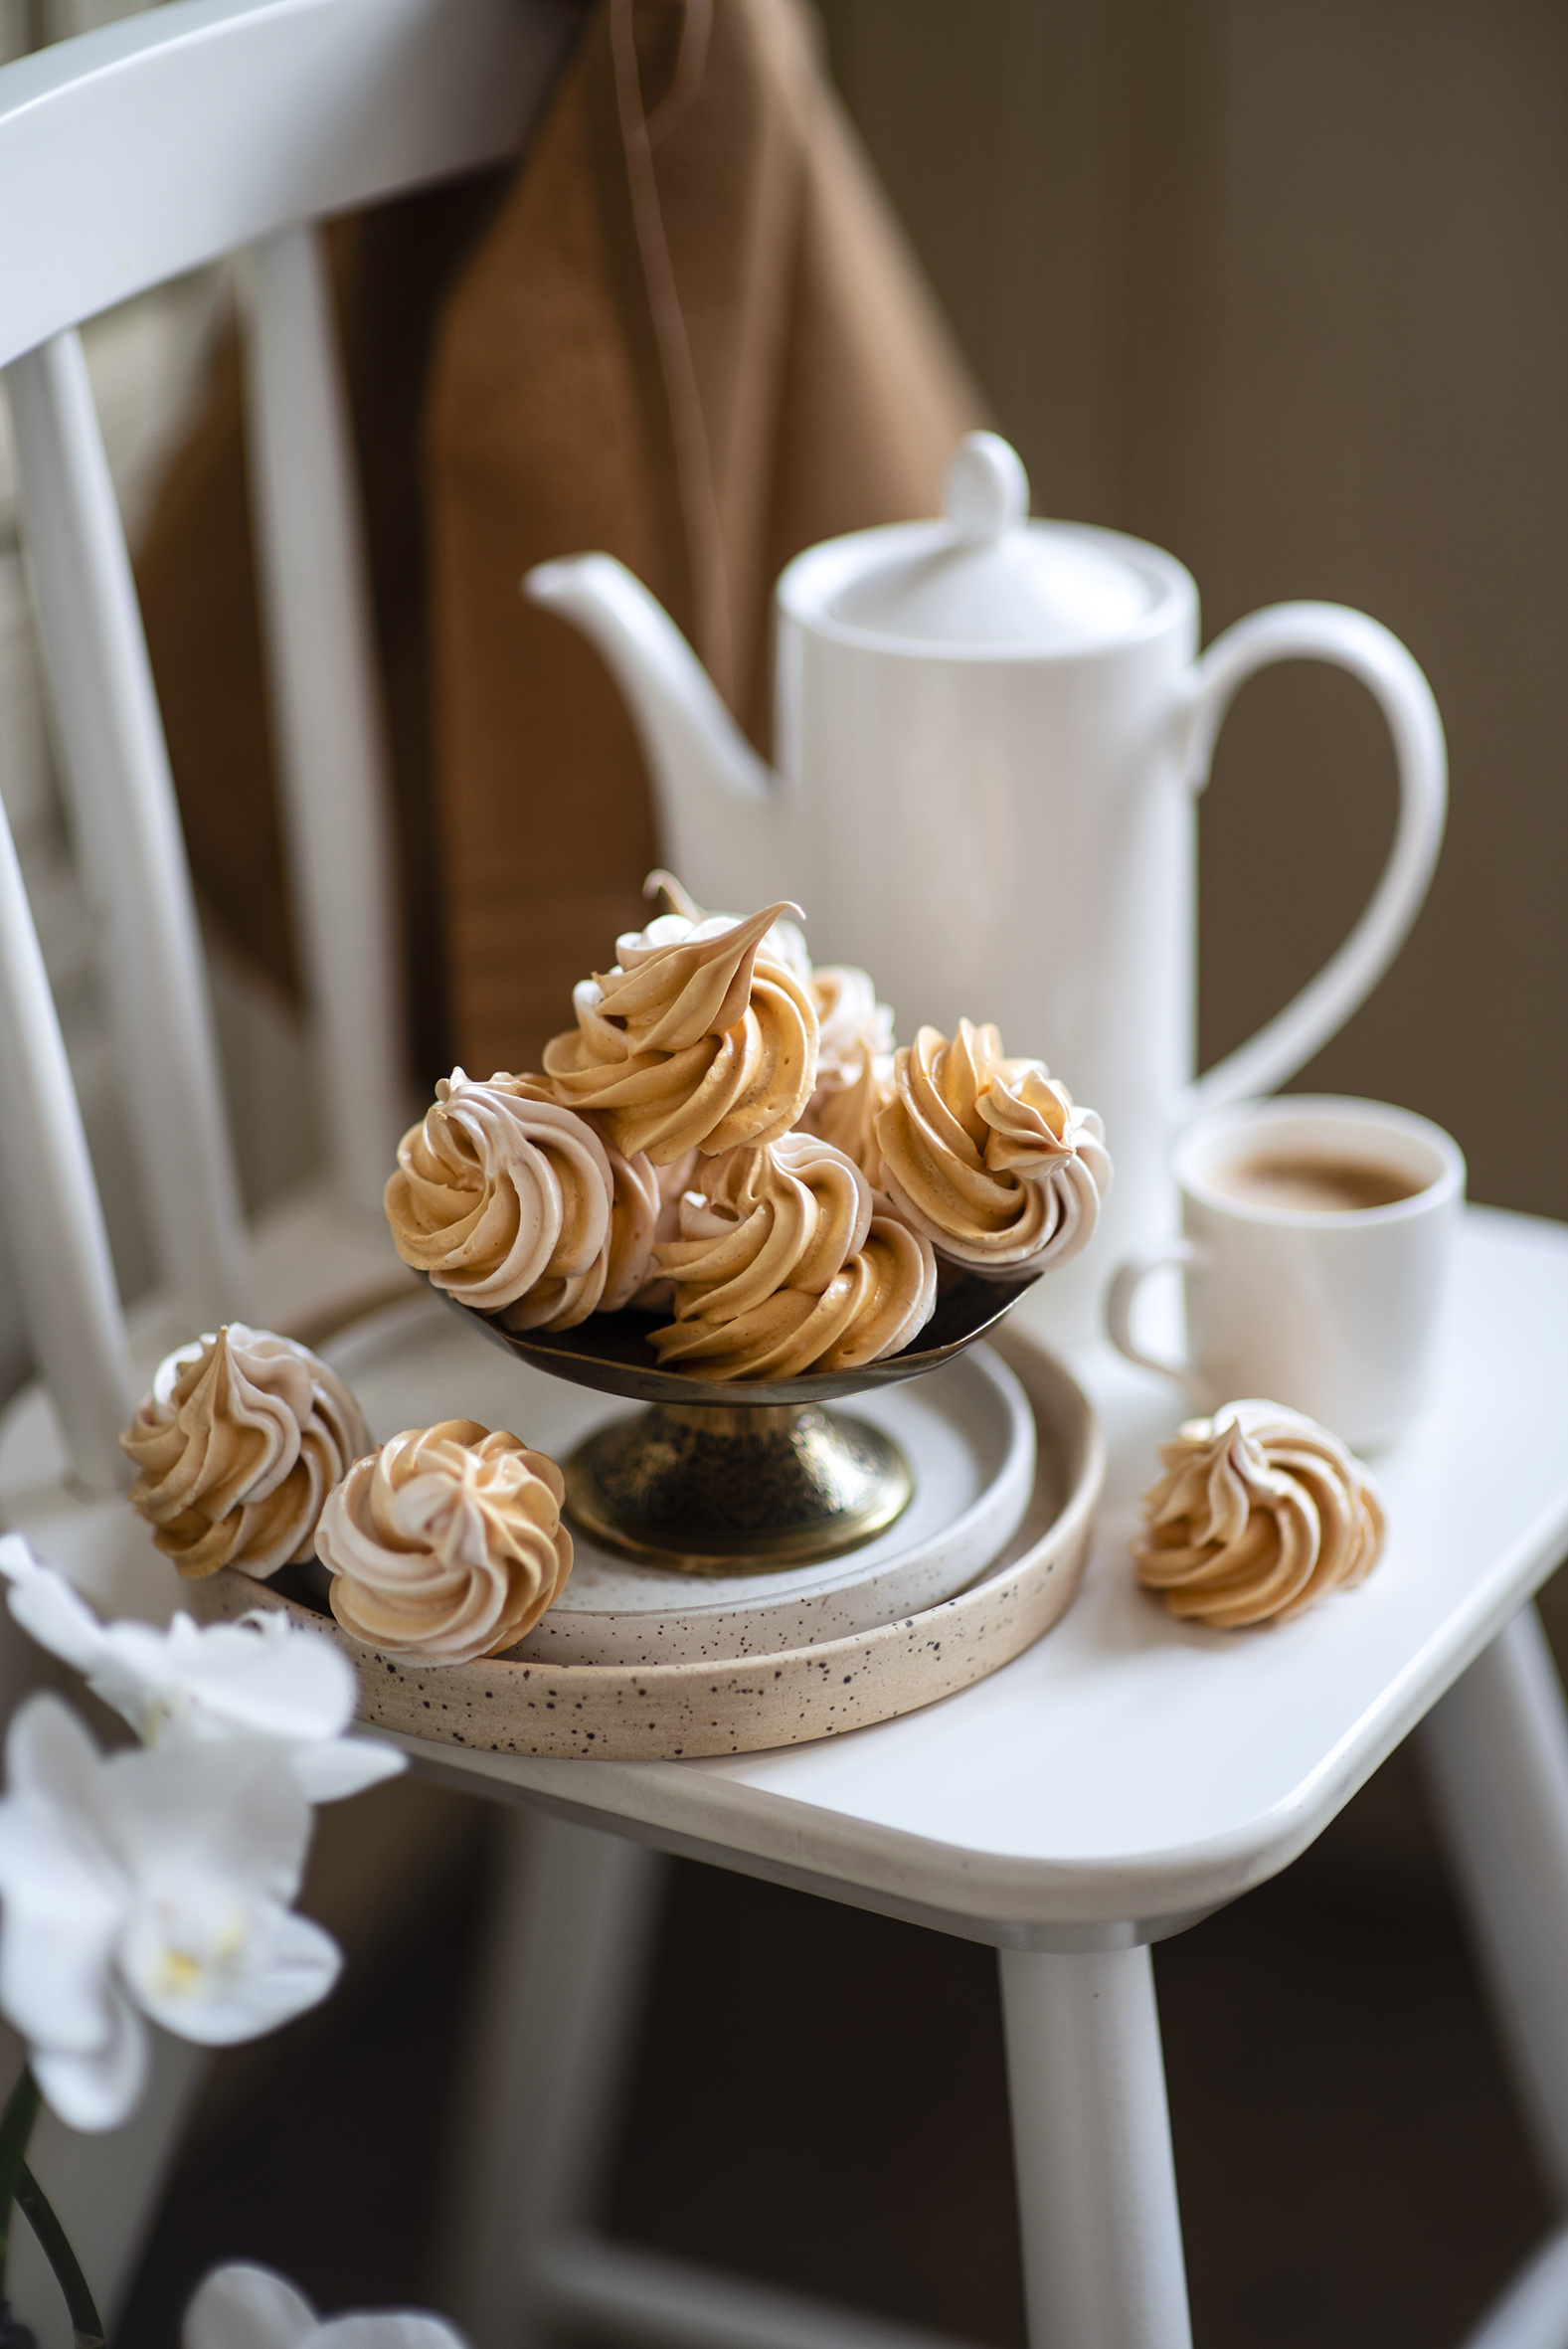 Picture Coffee Cappuccino Cup Food Little cakes  for Mobile phone